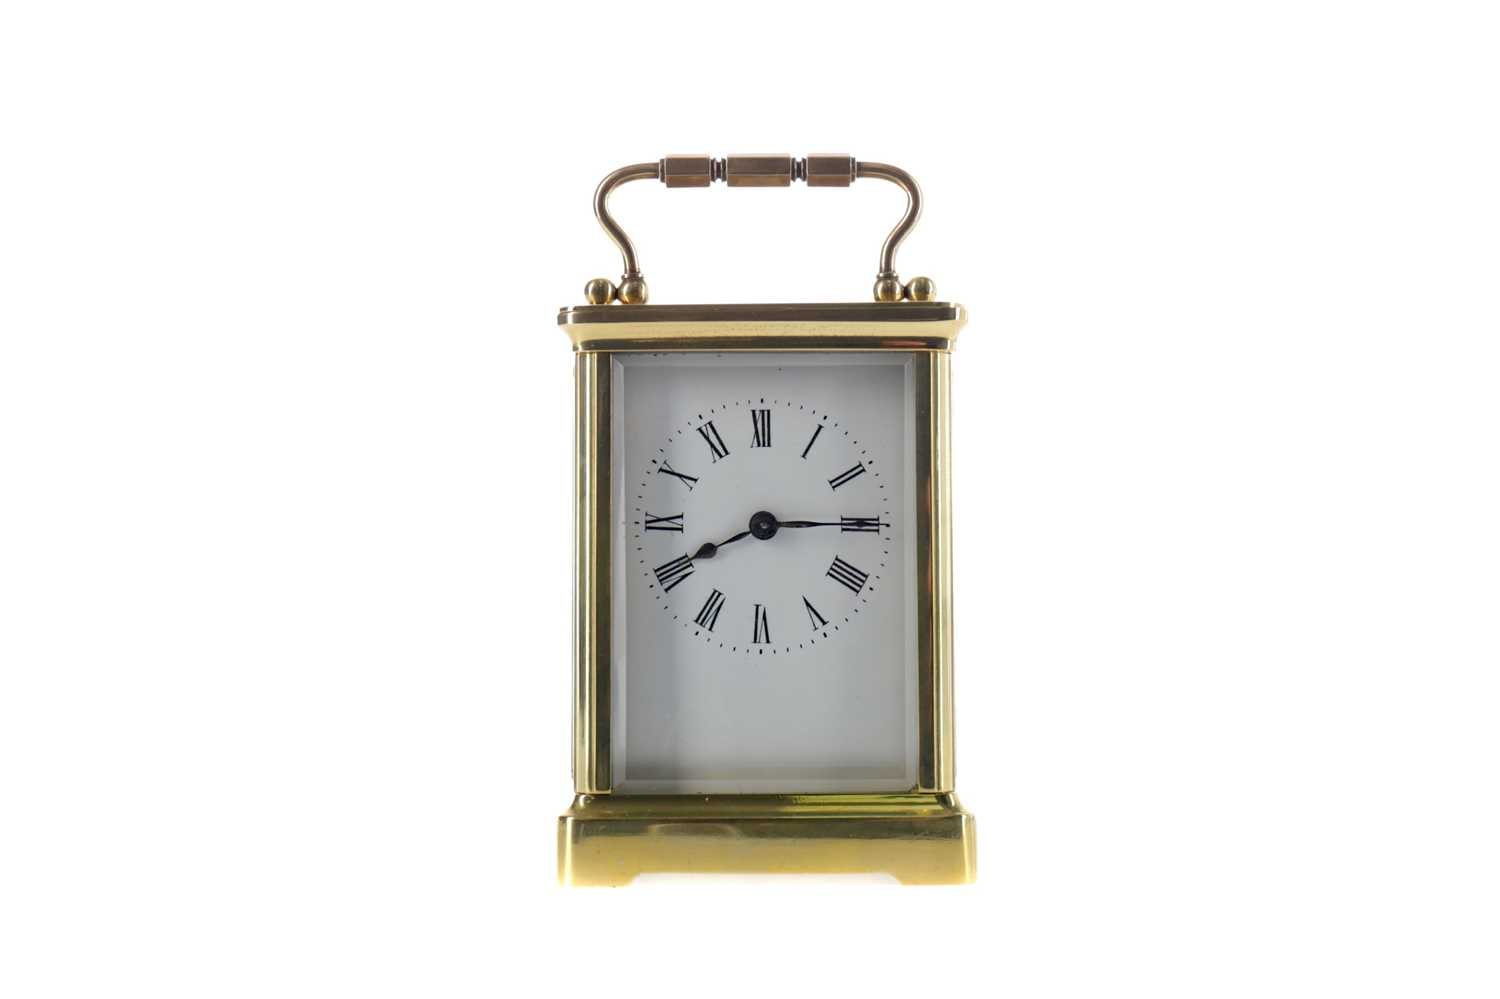 Lot 1744 - AN EARLY 20TH CENTURY CARRIAGE CLOCK